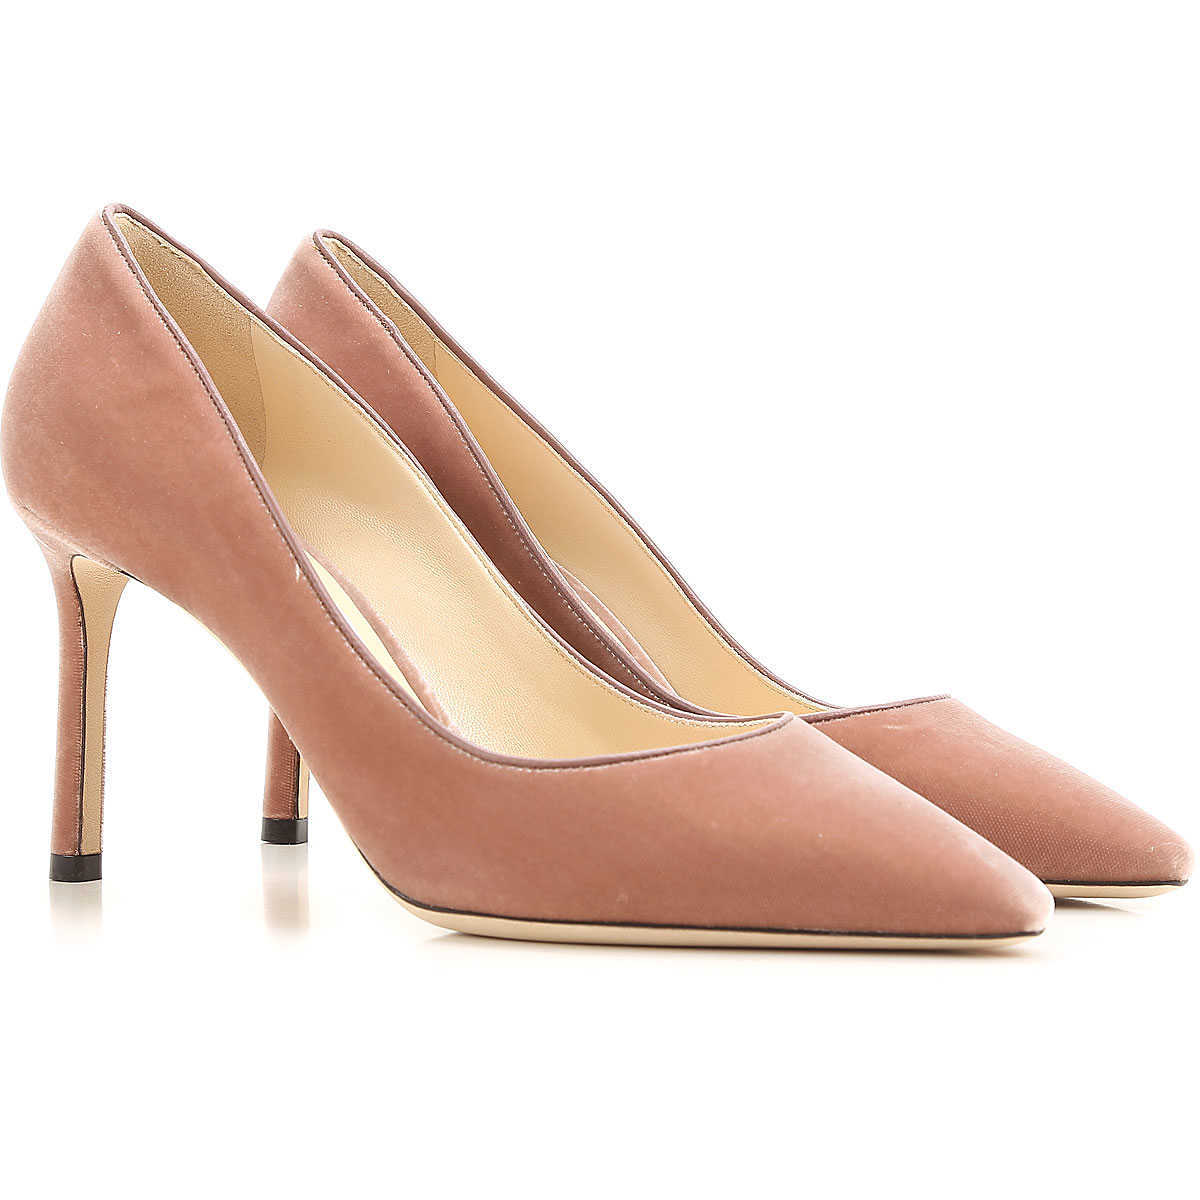 Jimmy Choo Pumps & High Heels for Women On Sale in Outlet Antique Rose DK - GOOFASH - Womens HIGH HEELS